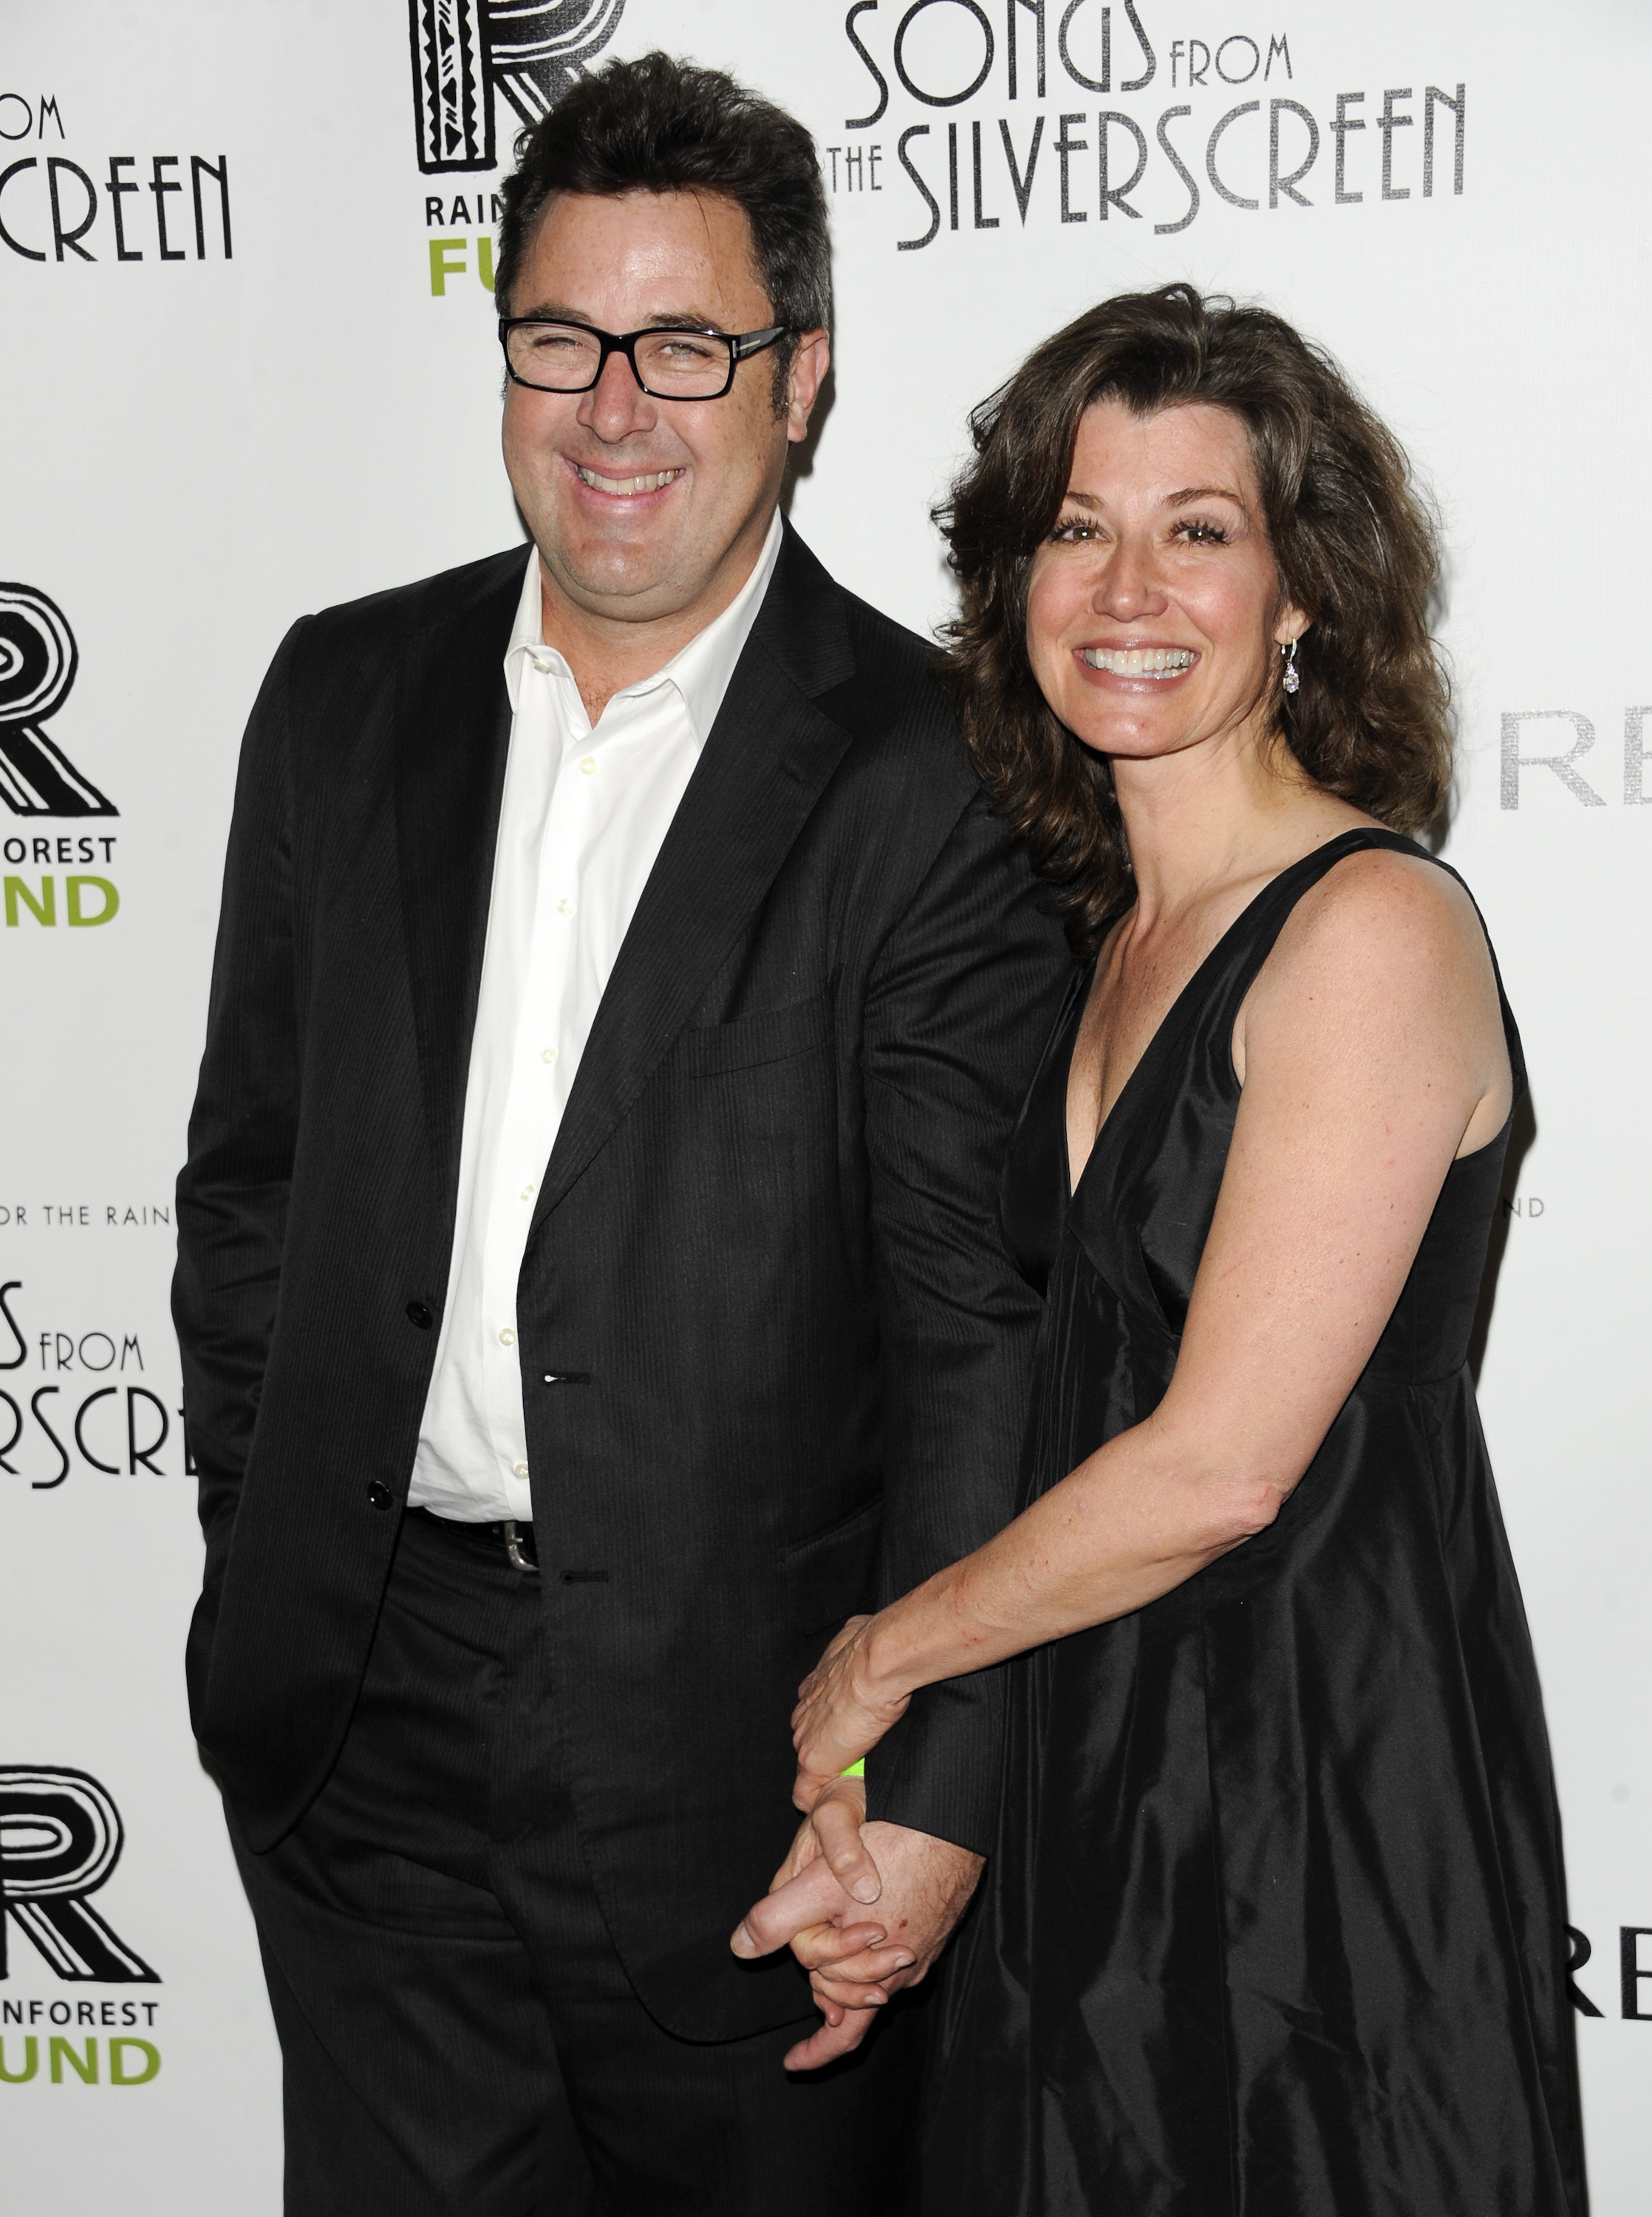 Amy Grant Vince Gill: Many In Country Music Mum Over Gun Issues After Vegas